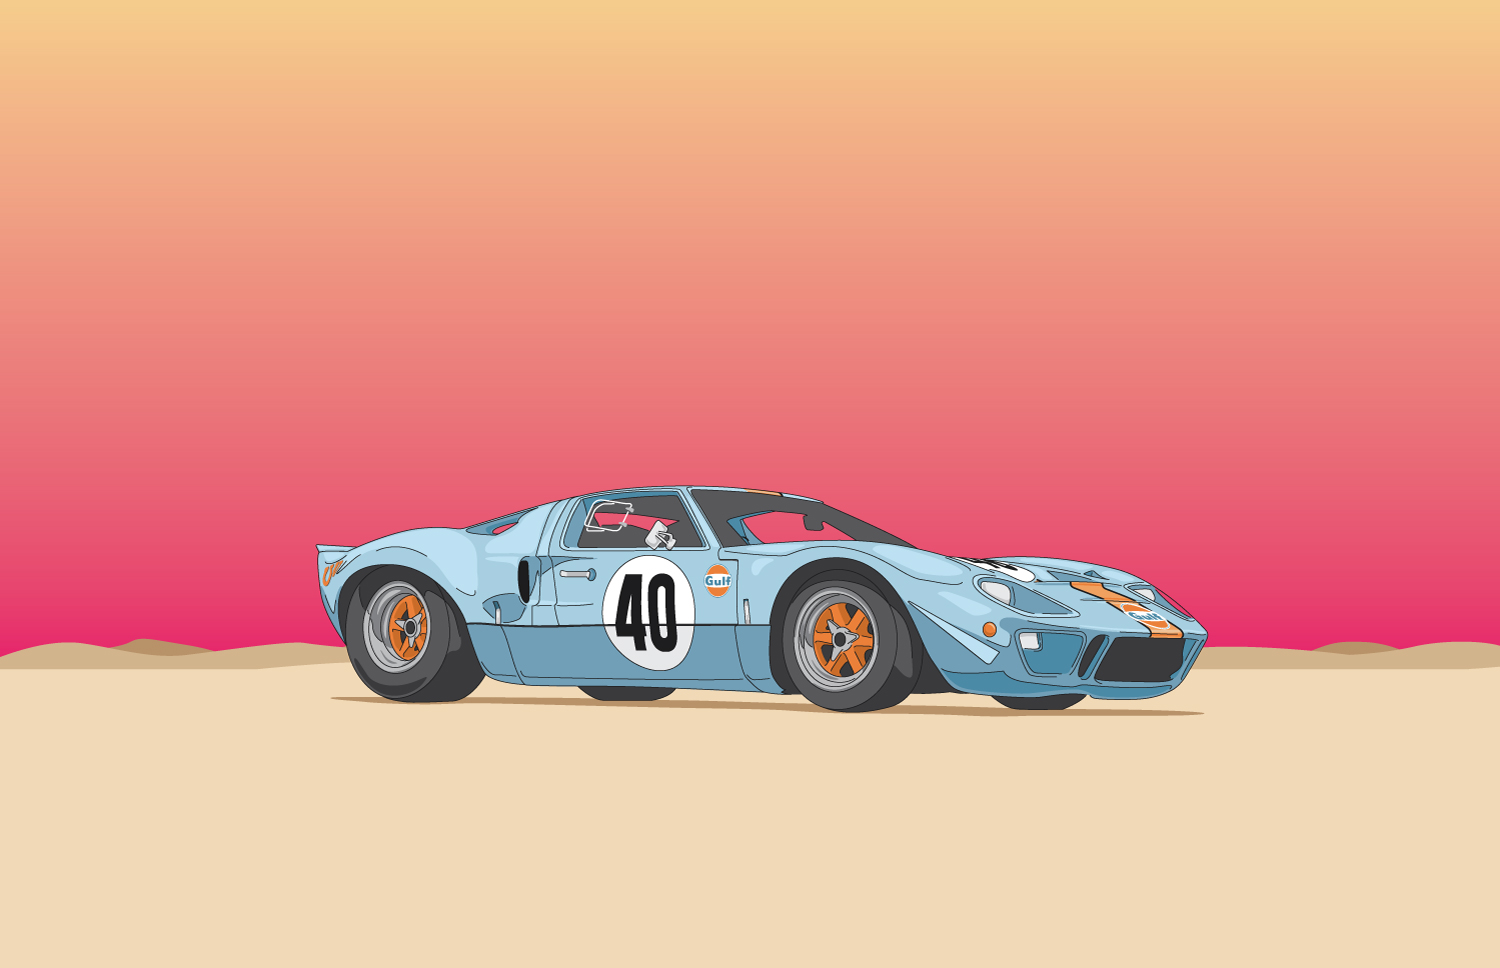 GT40-Illustration.jpg